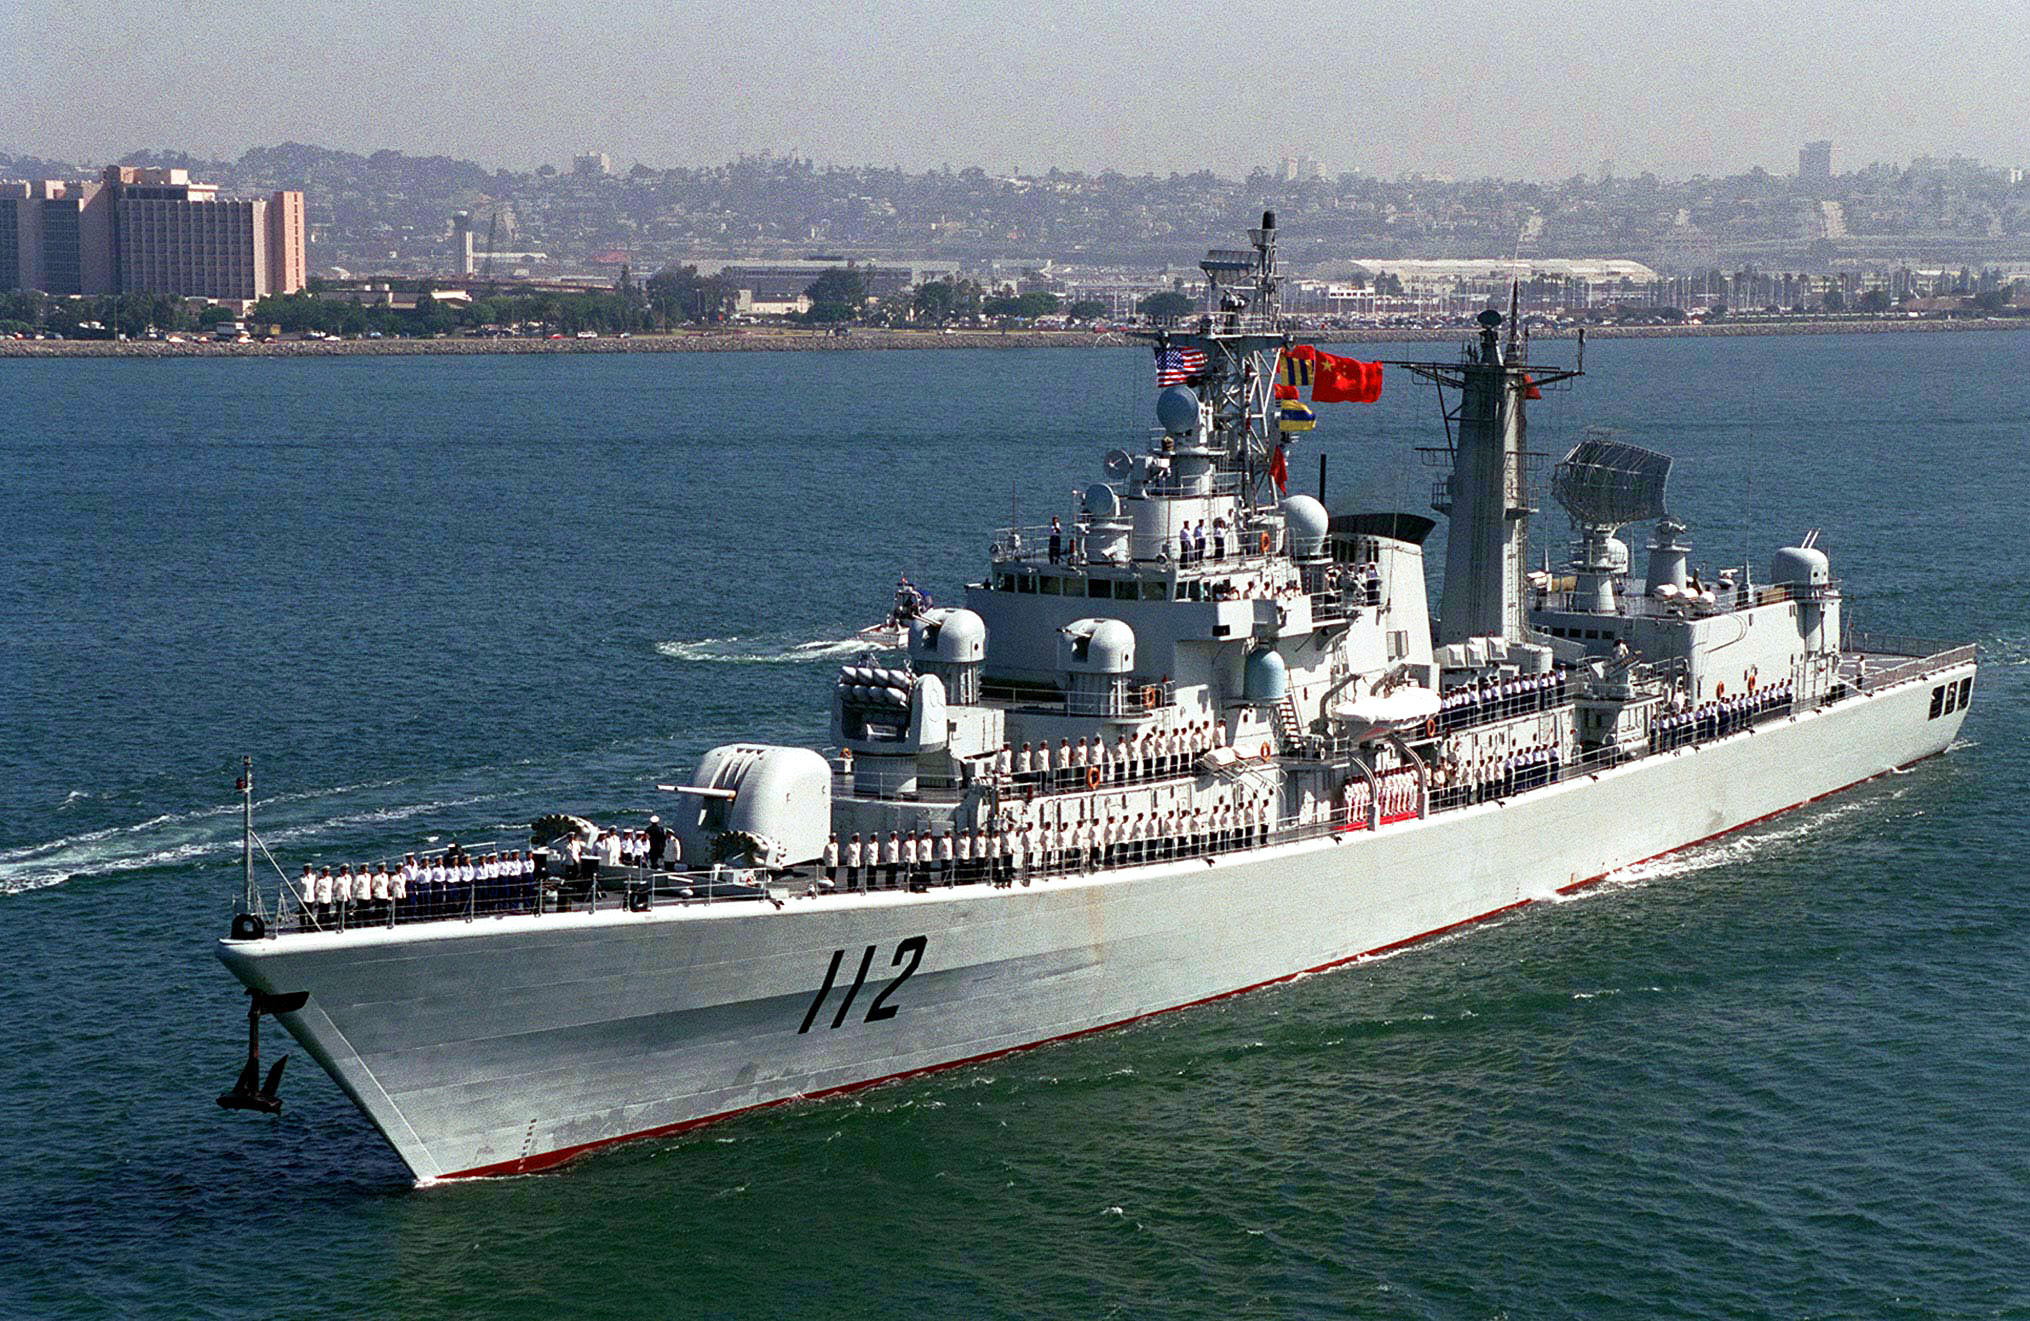 Chinese Warship Prepared To Fire At Japanese Destroyer